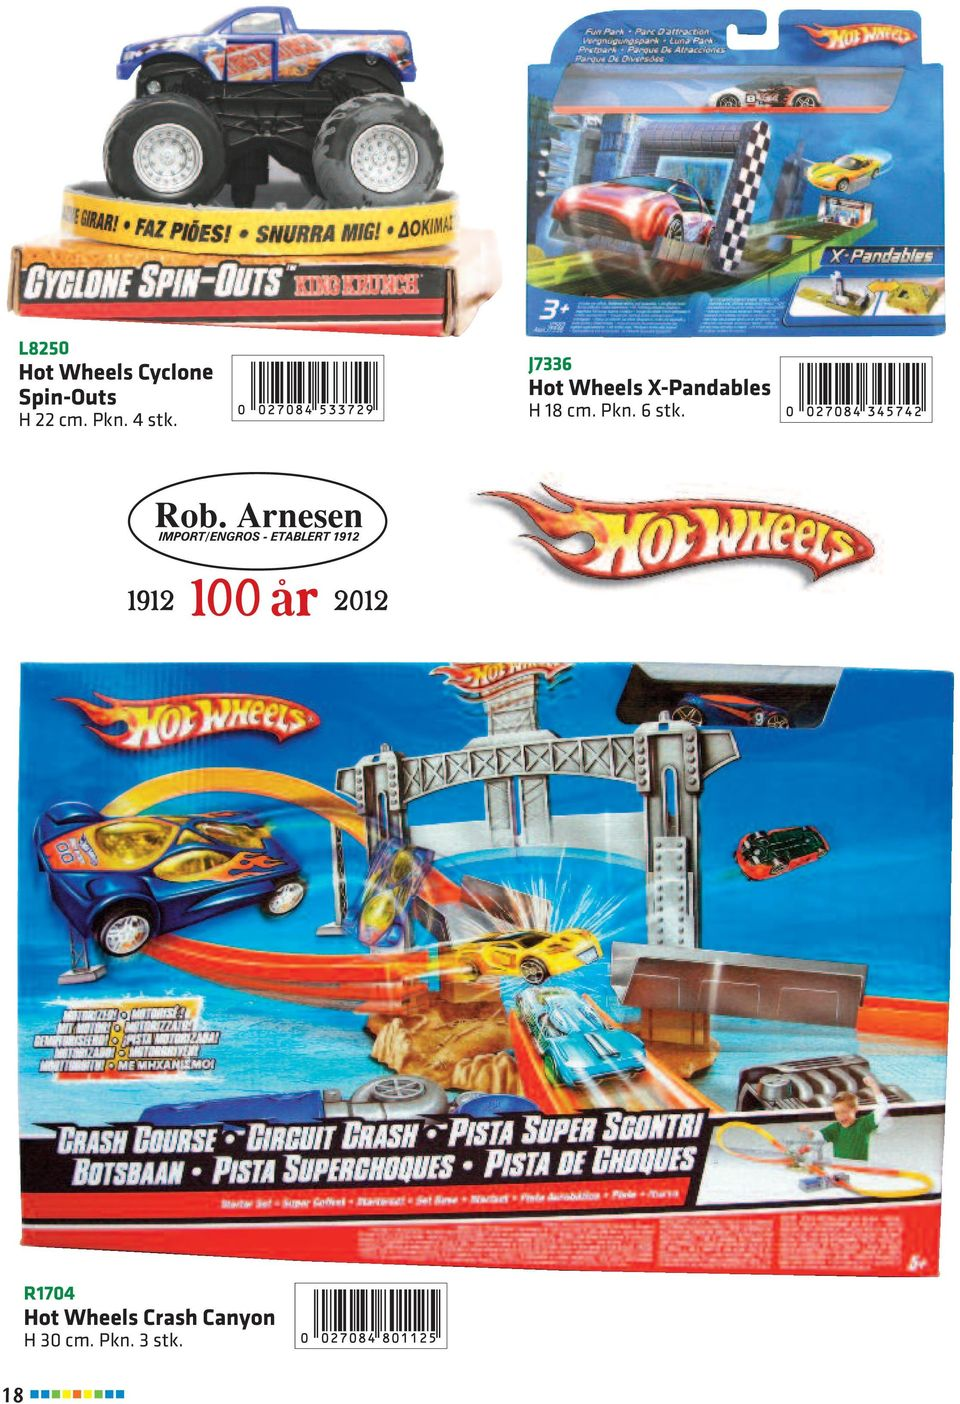 J7336 Hot Wheels X-Pandables H 18 cm. Pkn.